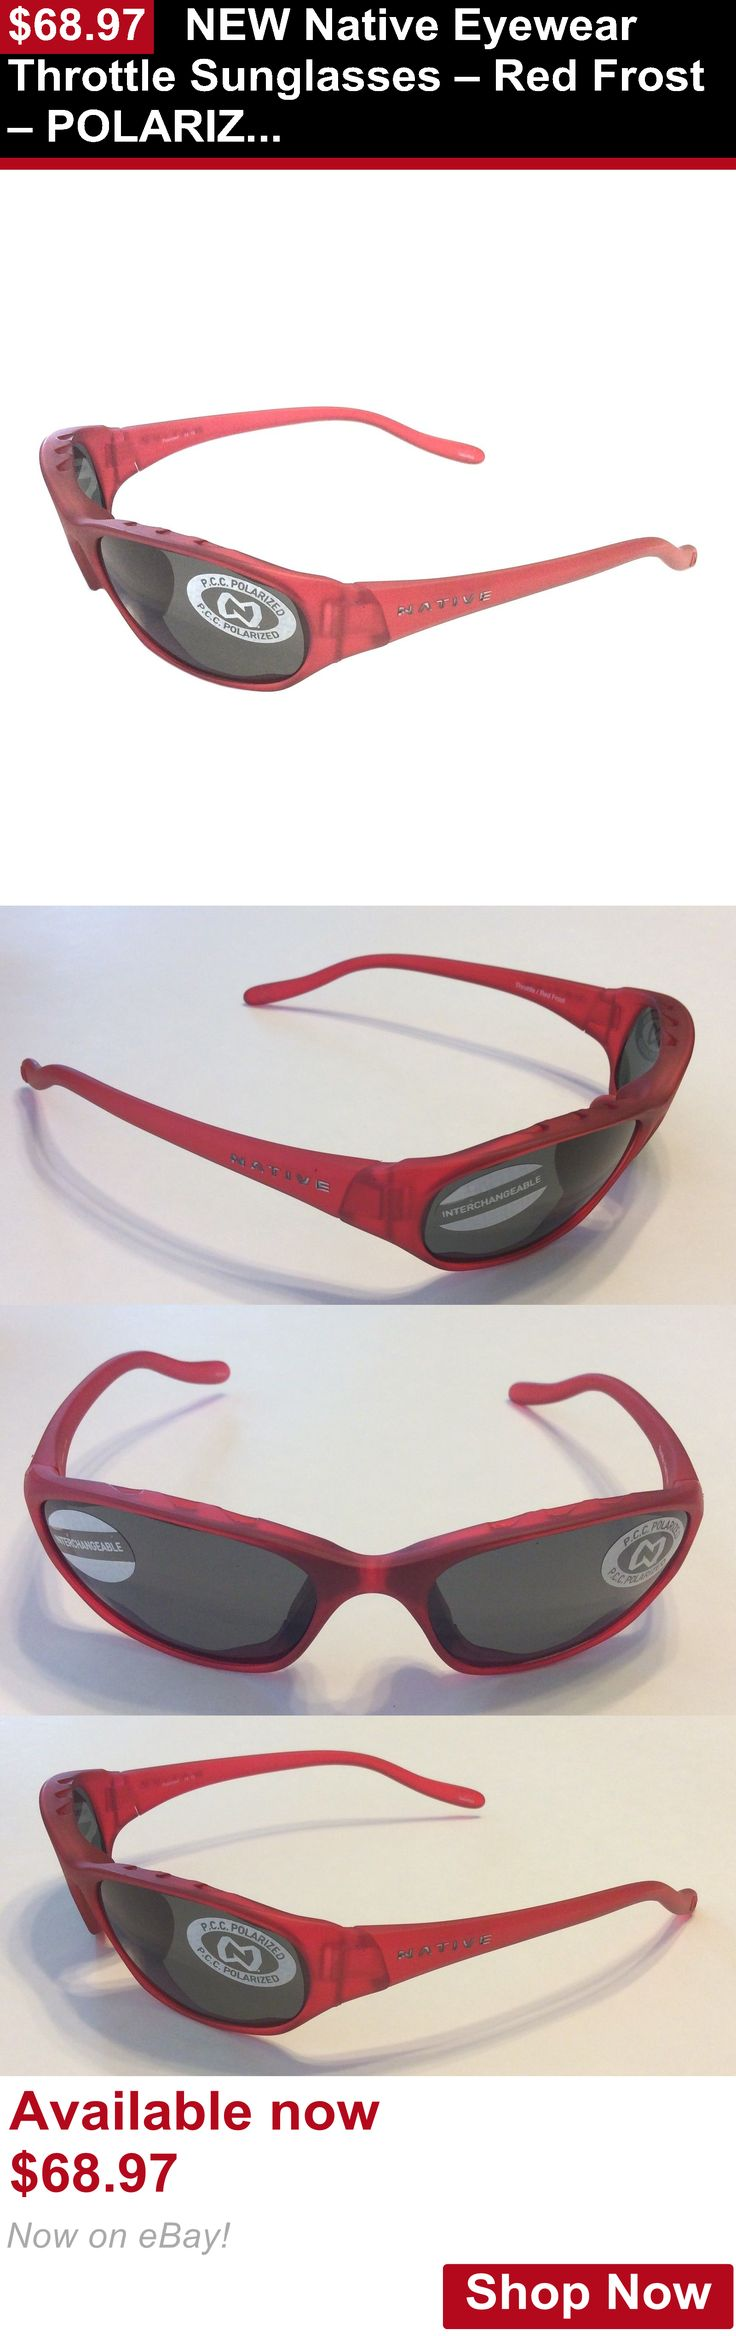 Unisex accessories: New Native Eyewear Throttle Sunglasses – Red Frost – Polarized Gray Lens BUY IT NOW ONLY: $68.97